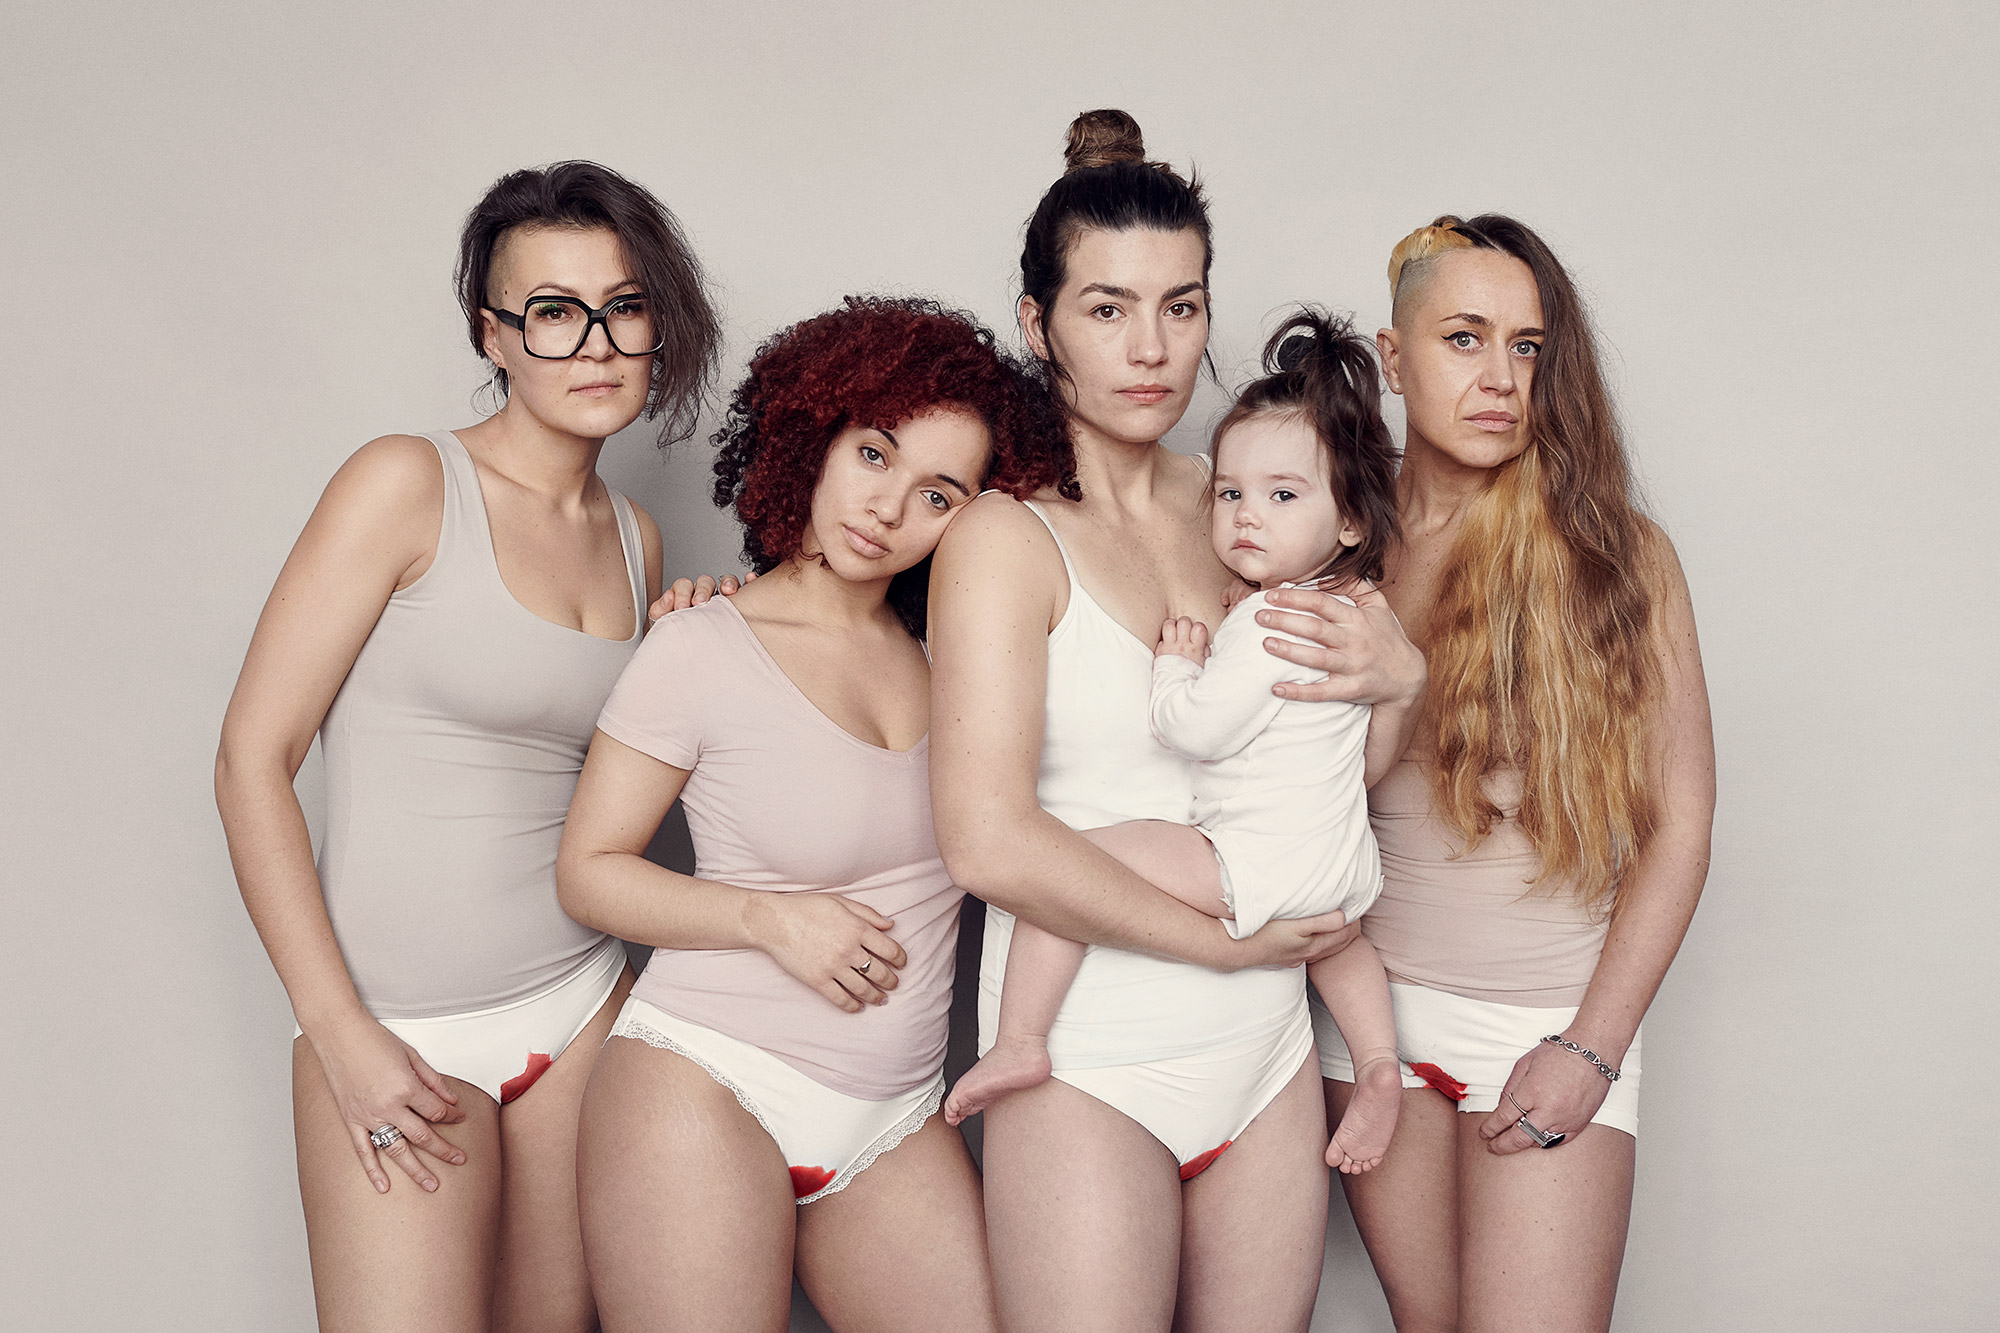 01-Group-shot-Portrait-photographer-Sane-Seven-asks-women-to-strip-to-their-underwear-for-a-project-about-period-shaming